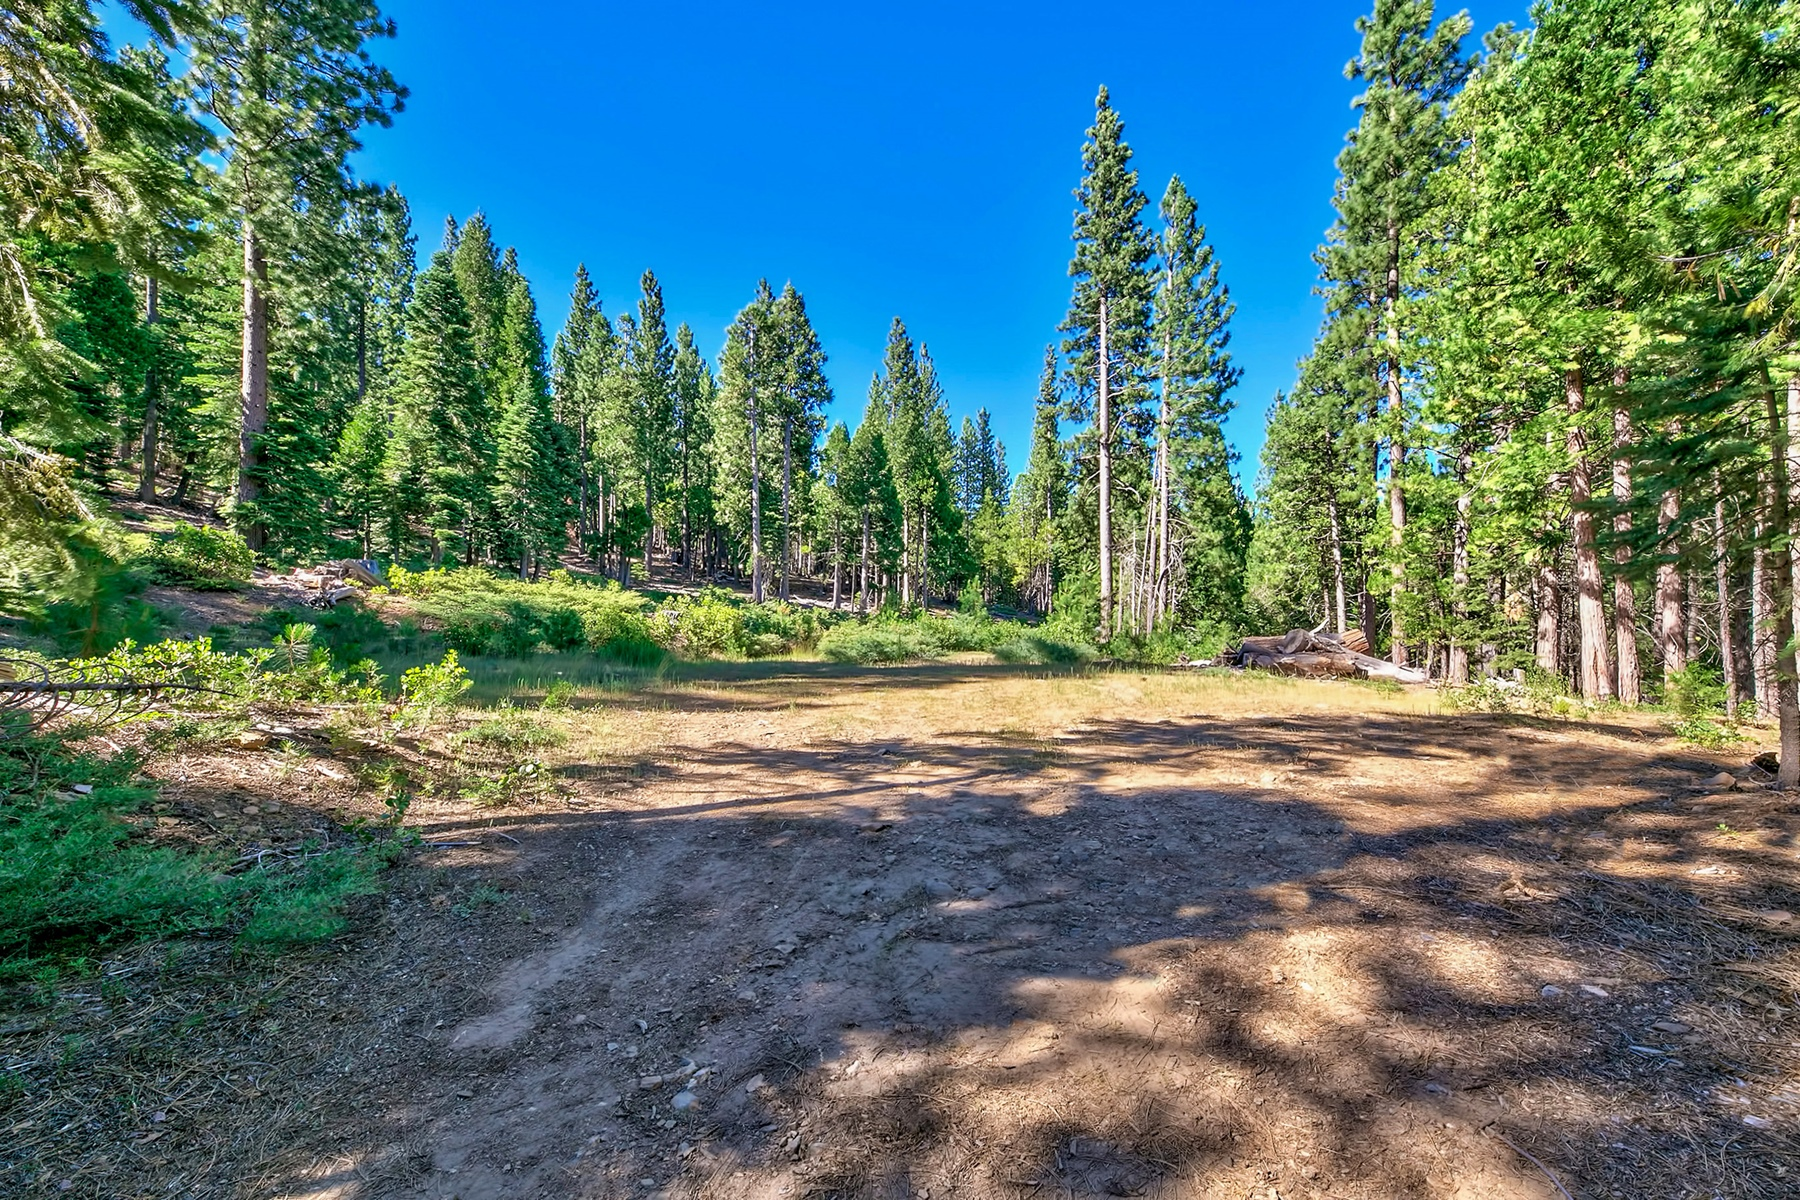 Additional photo for property listing at 012-140-008 Highway 49, Calpine, CA 012-140-008 Highway 49 Calpine, California 96124 United States